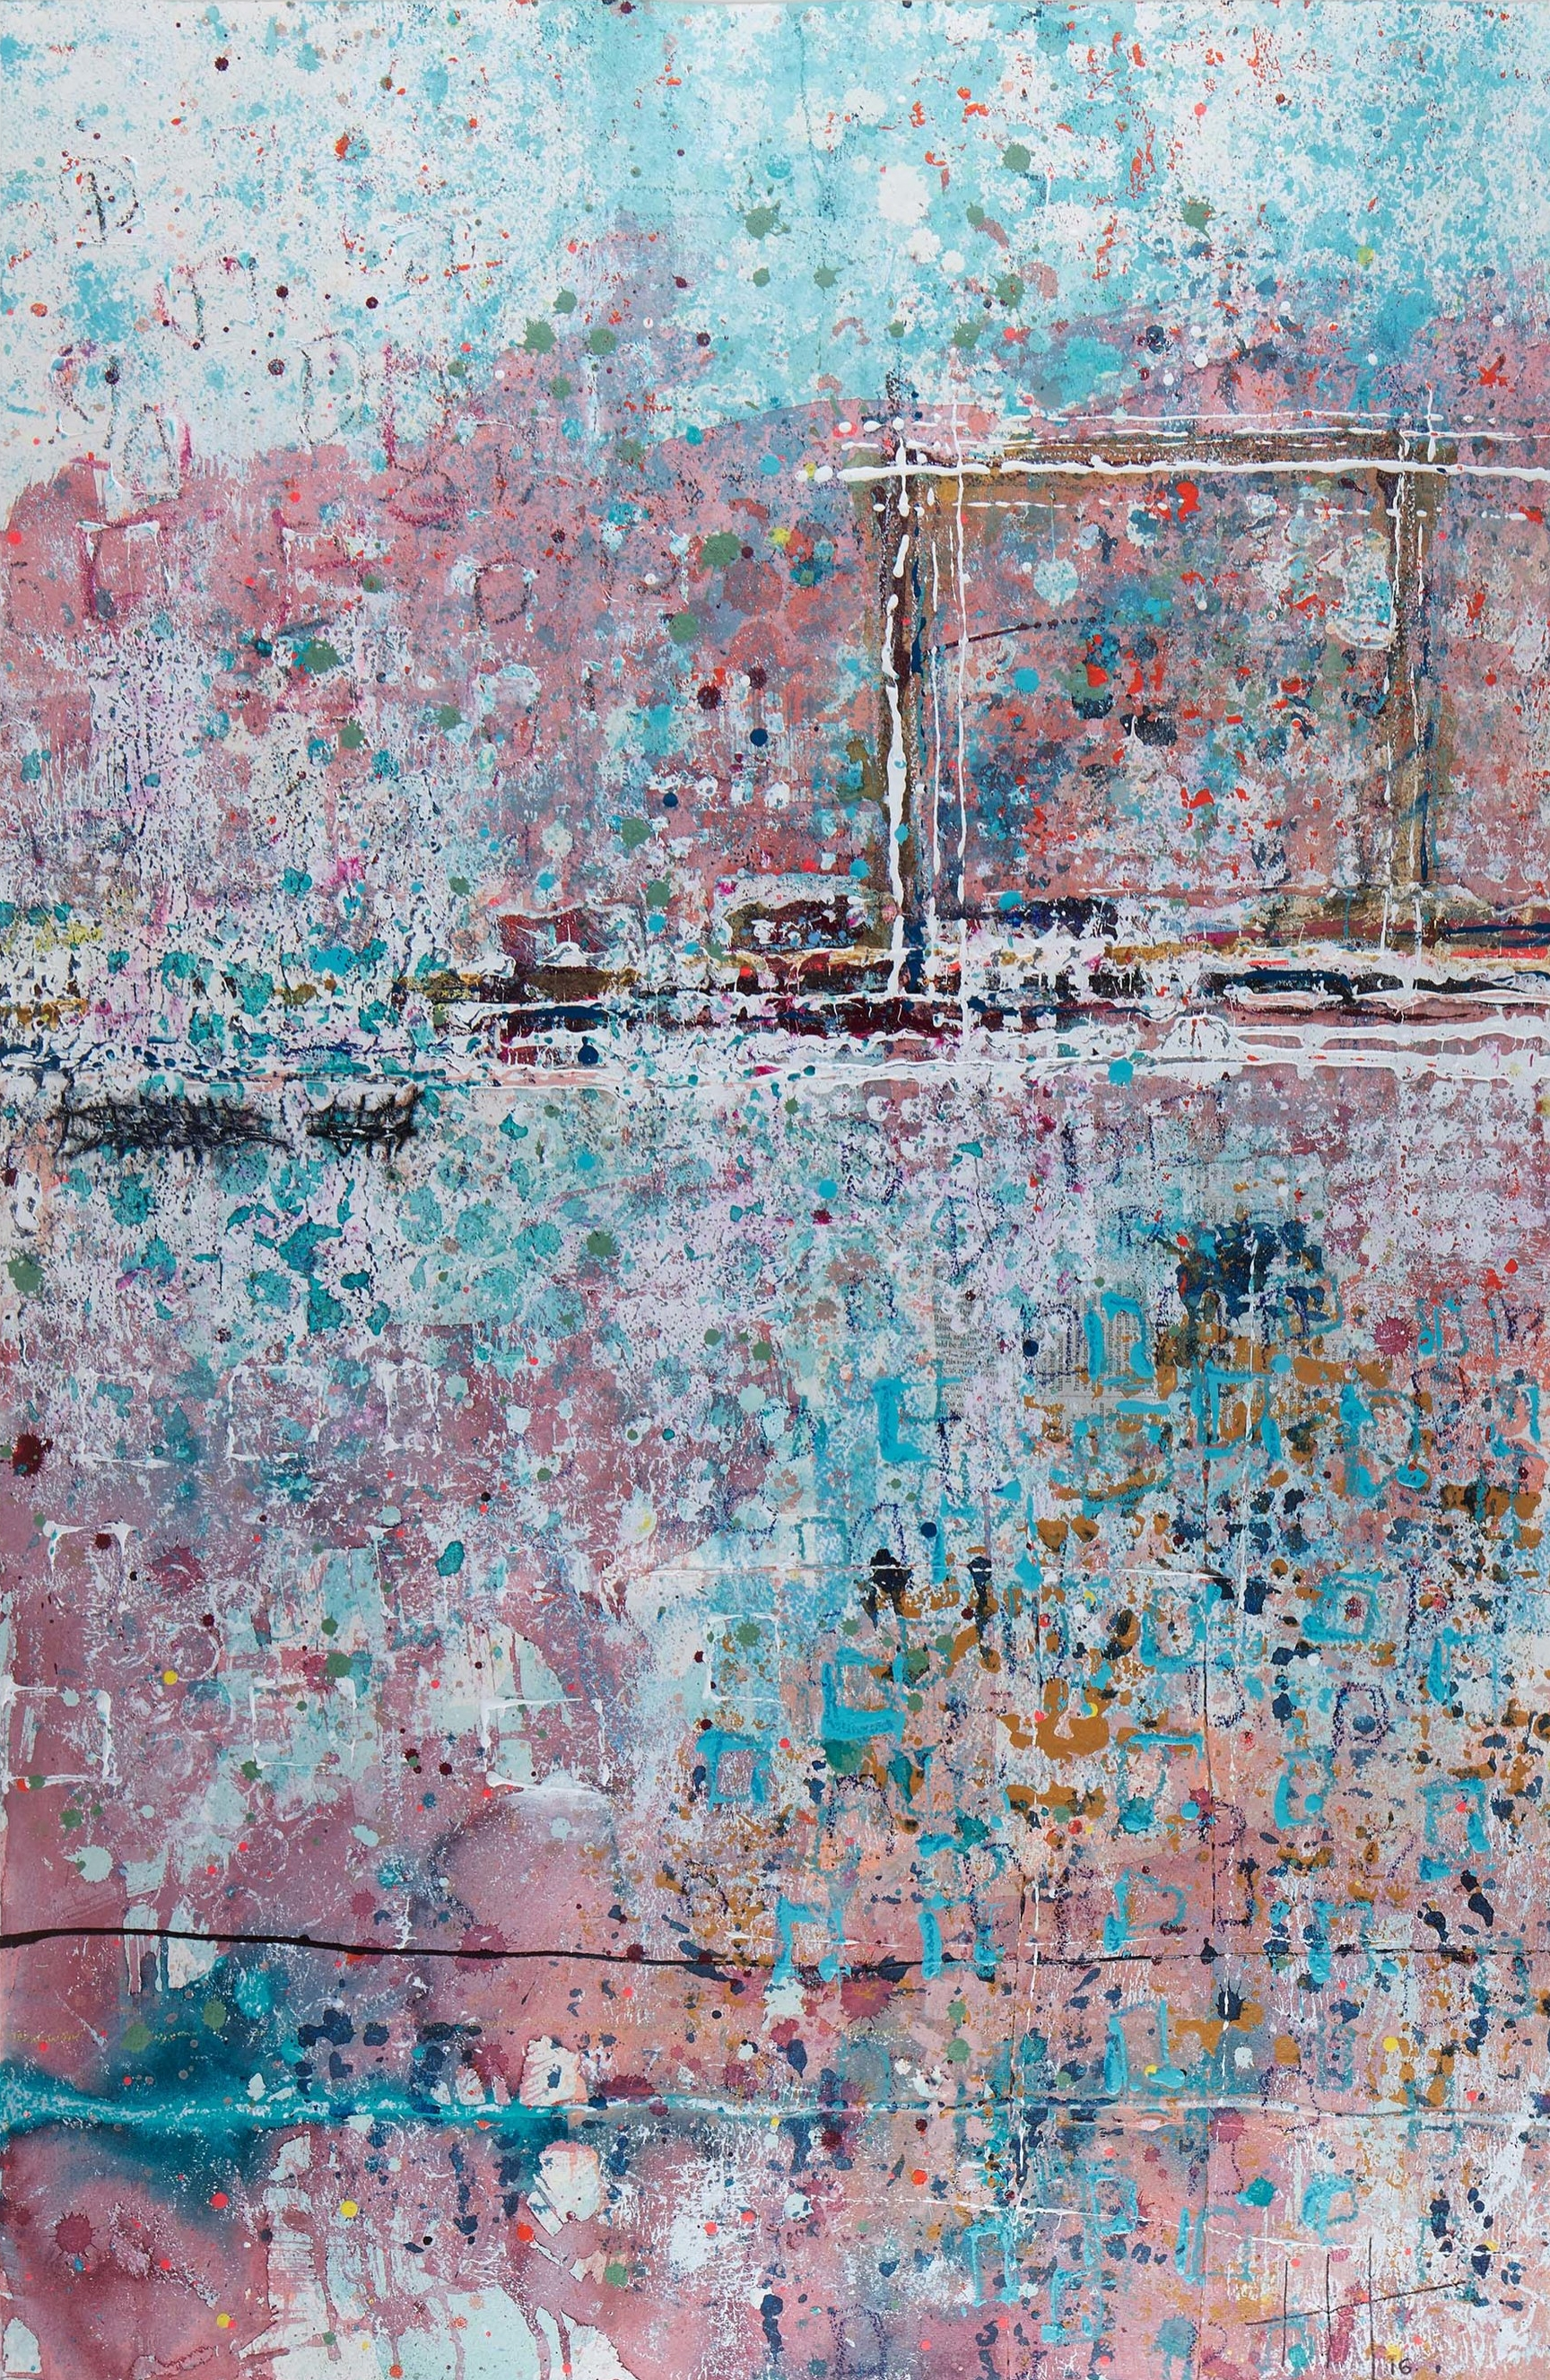 'Striding Out' Acrylic & Mixed Media /129cm x 93cm (framed) SOLD